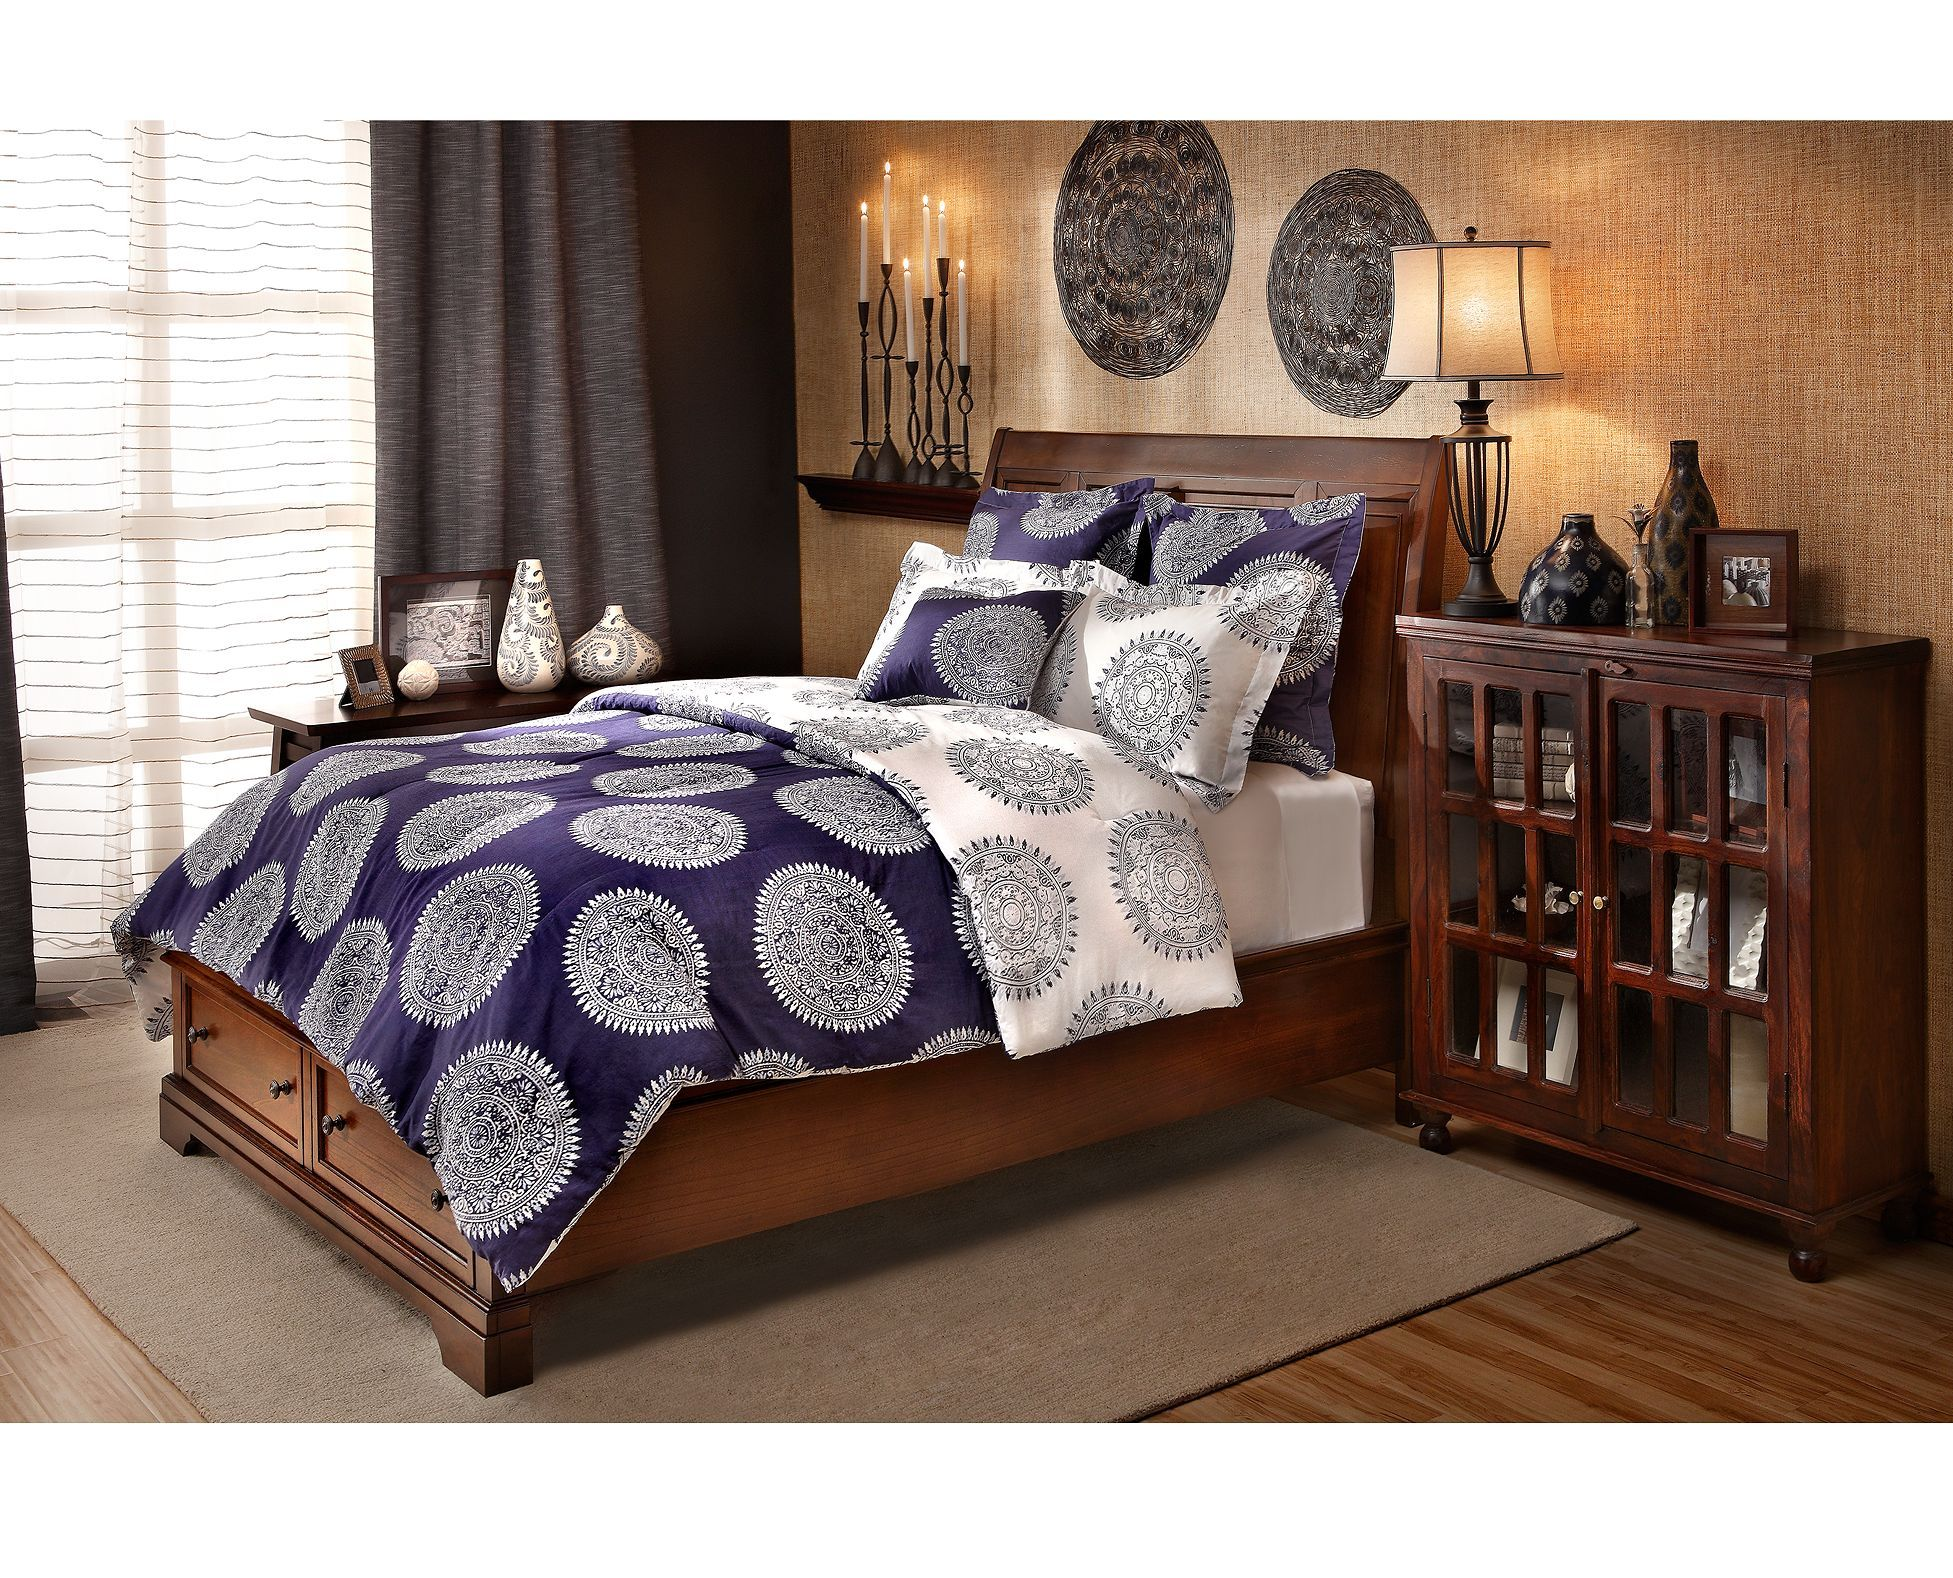 Http://www.furniturerow.com /fr/The Linen Shoppe/Painted Batik Queen Comforter Set /prod1770166/?utm_sourceu003d071716_FR_NS